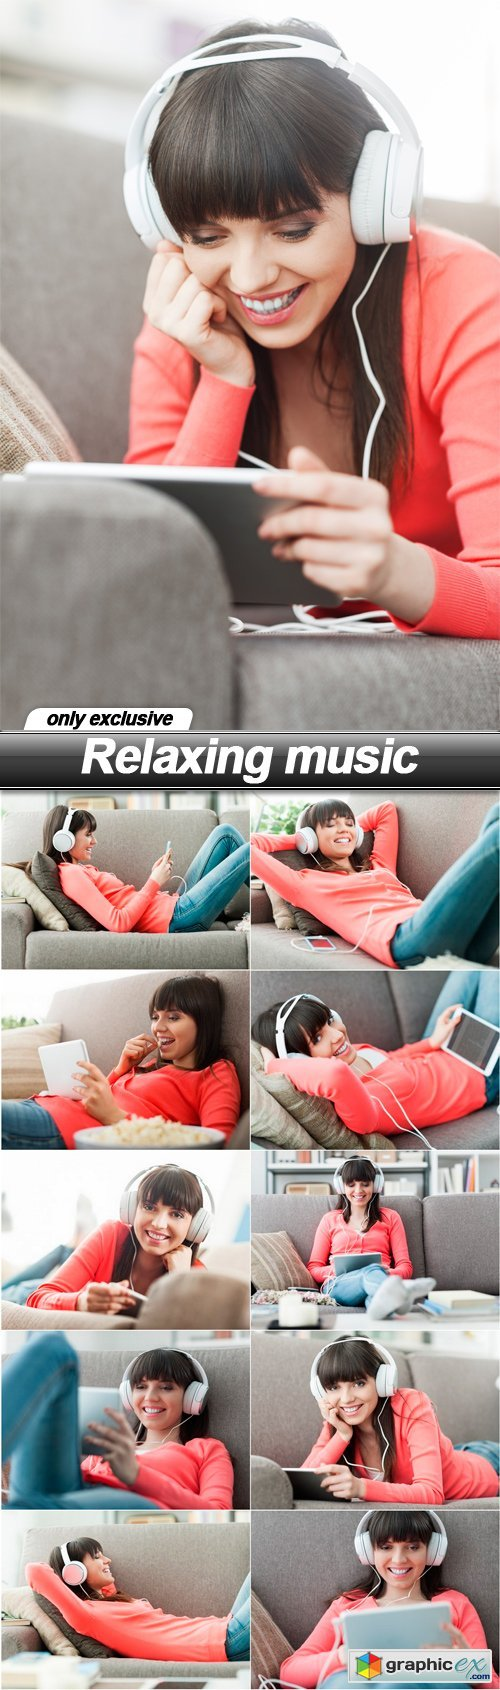 Relaxing music - 11 UHQ JPEG